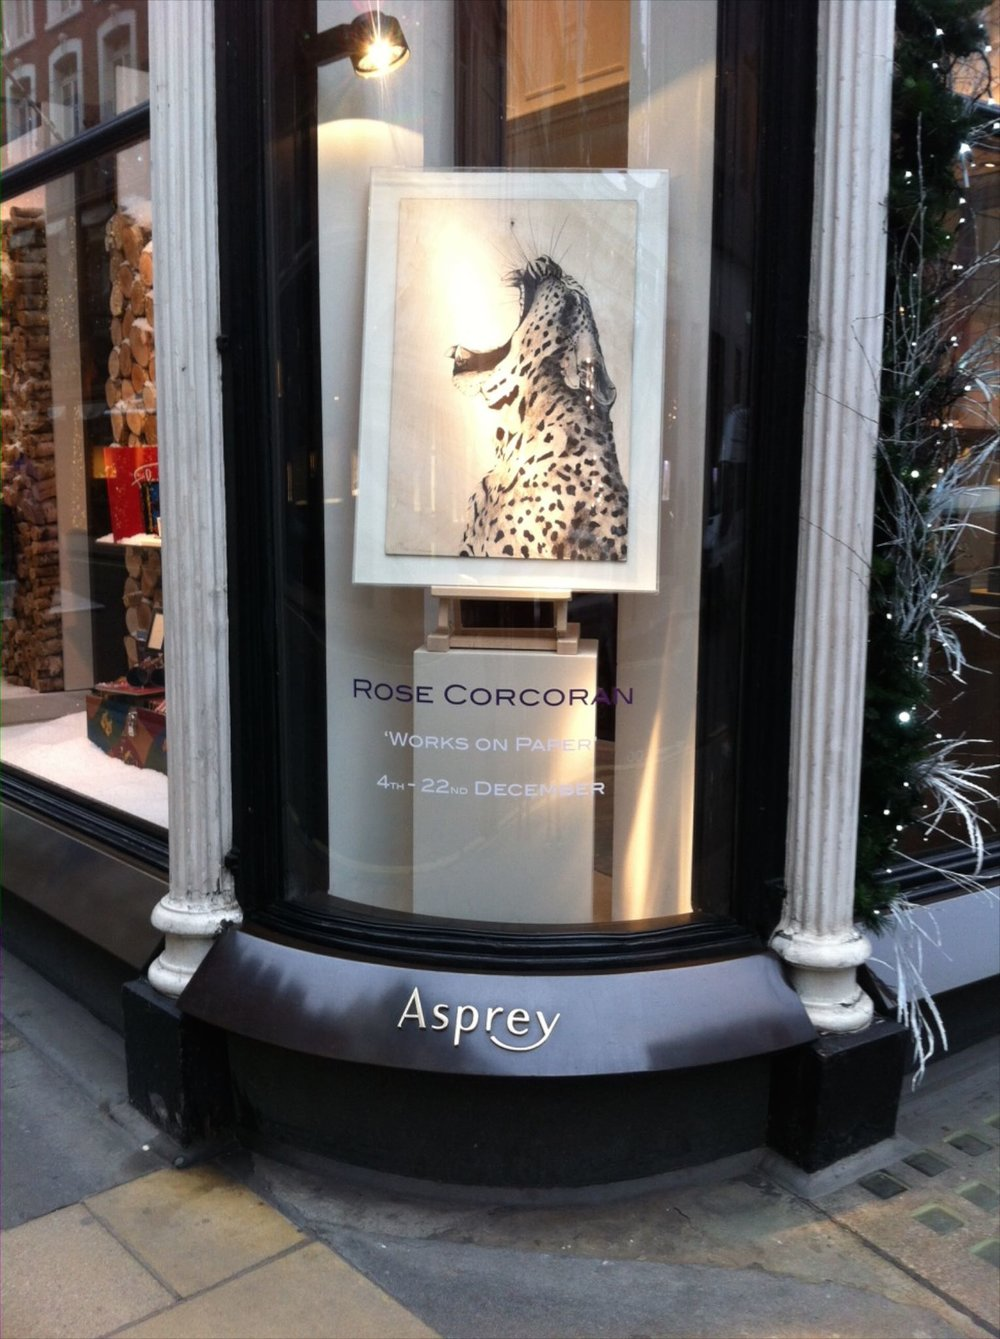 The Asprey's London    View the Show